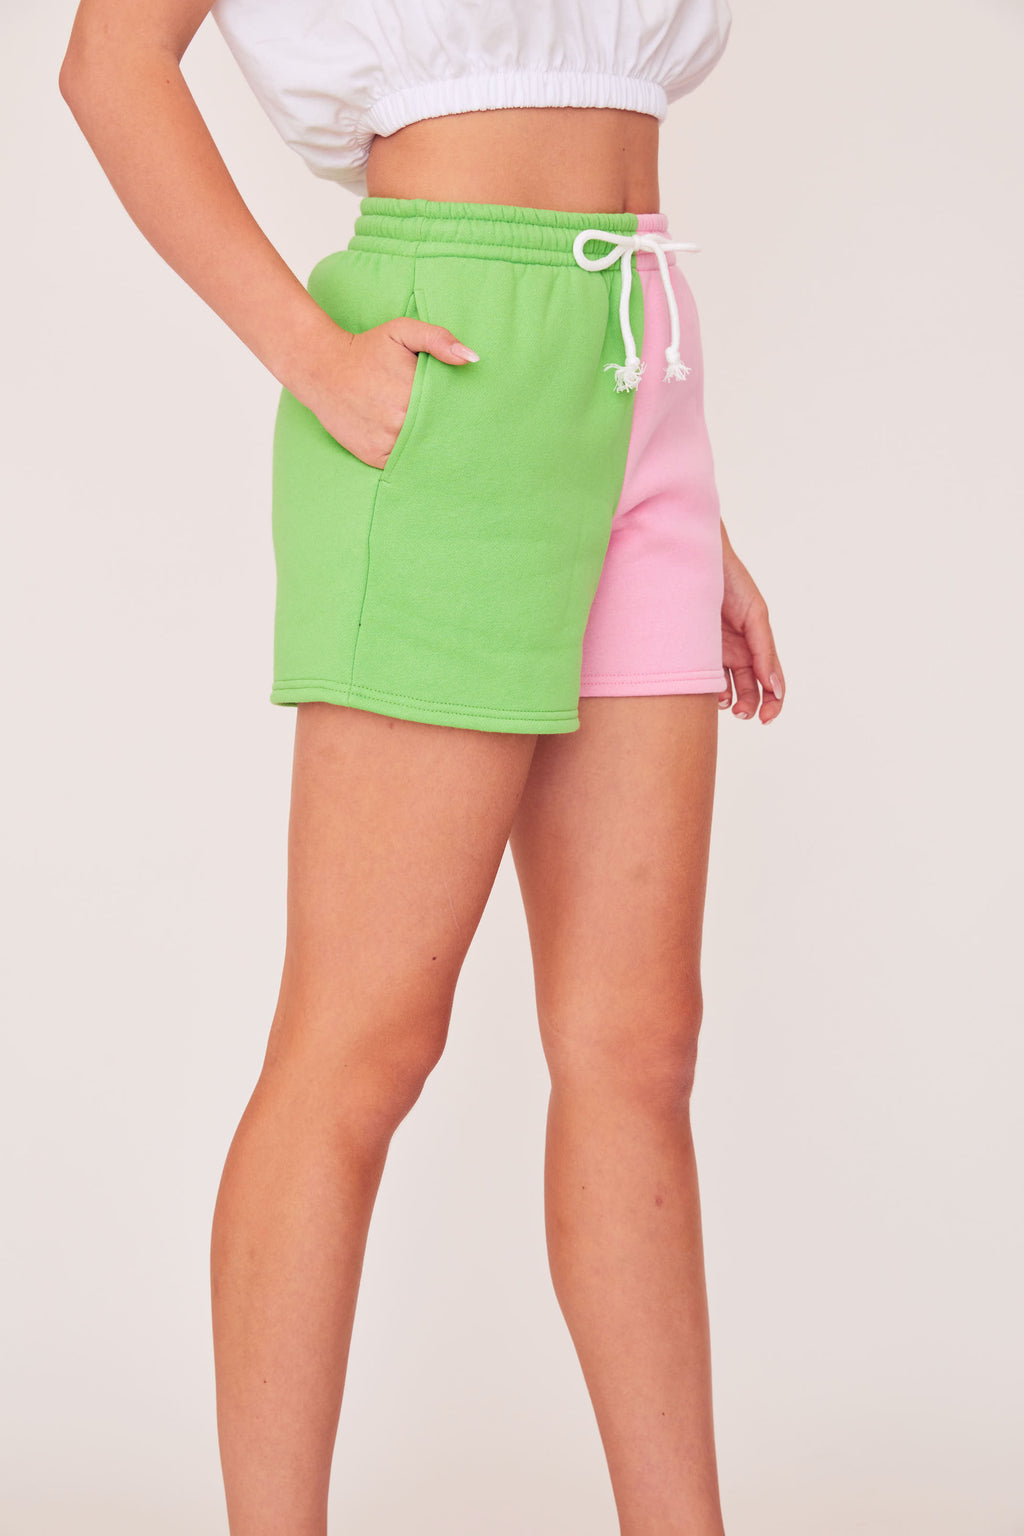 Two Tone Shorts - Pink/Green